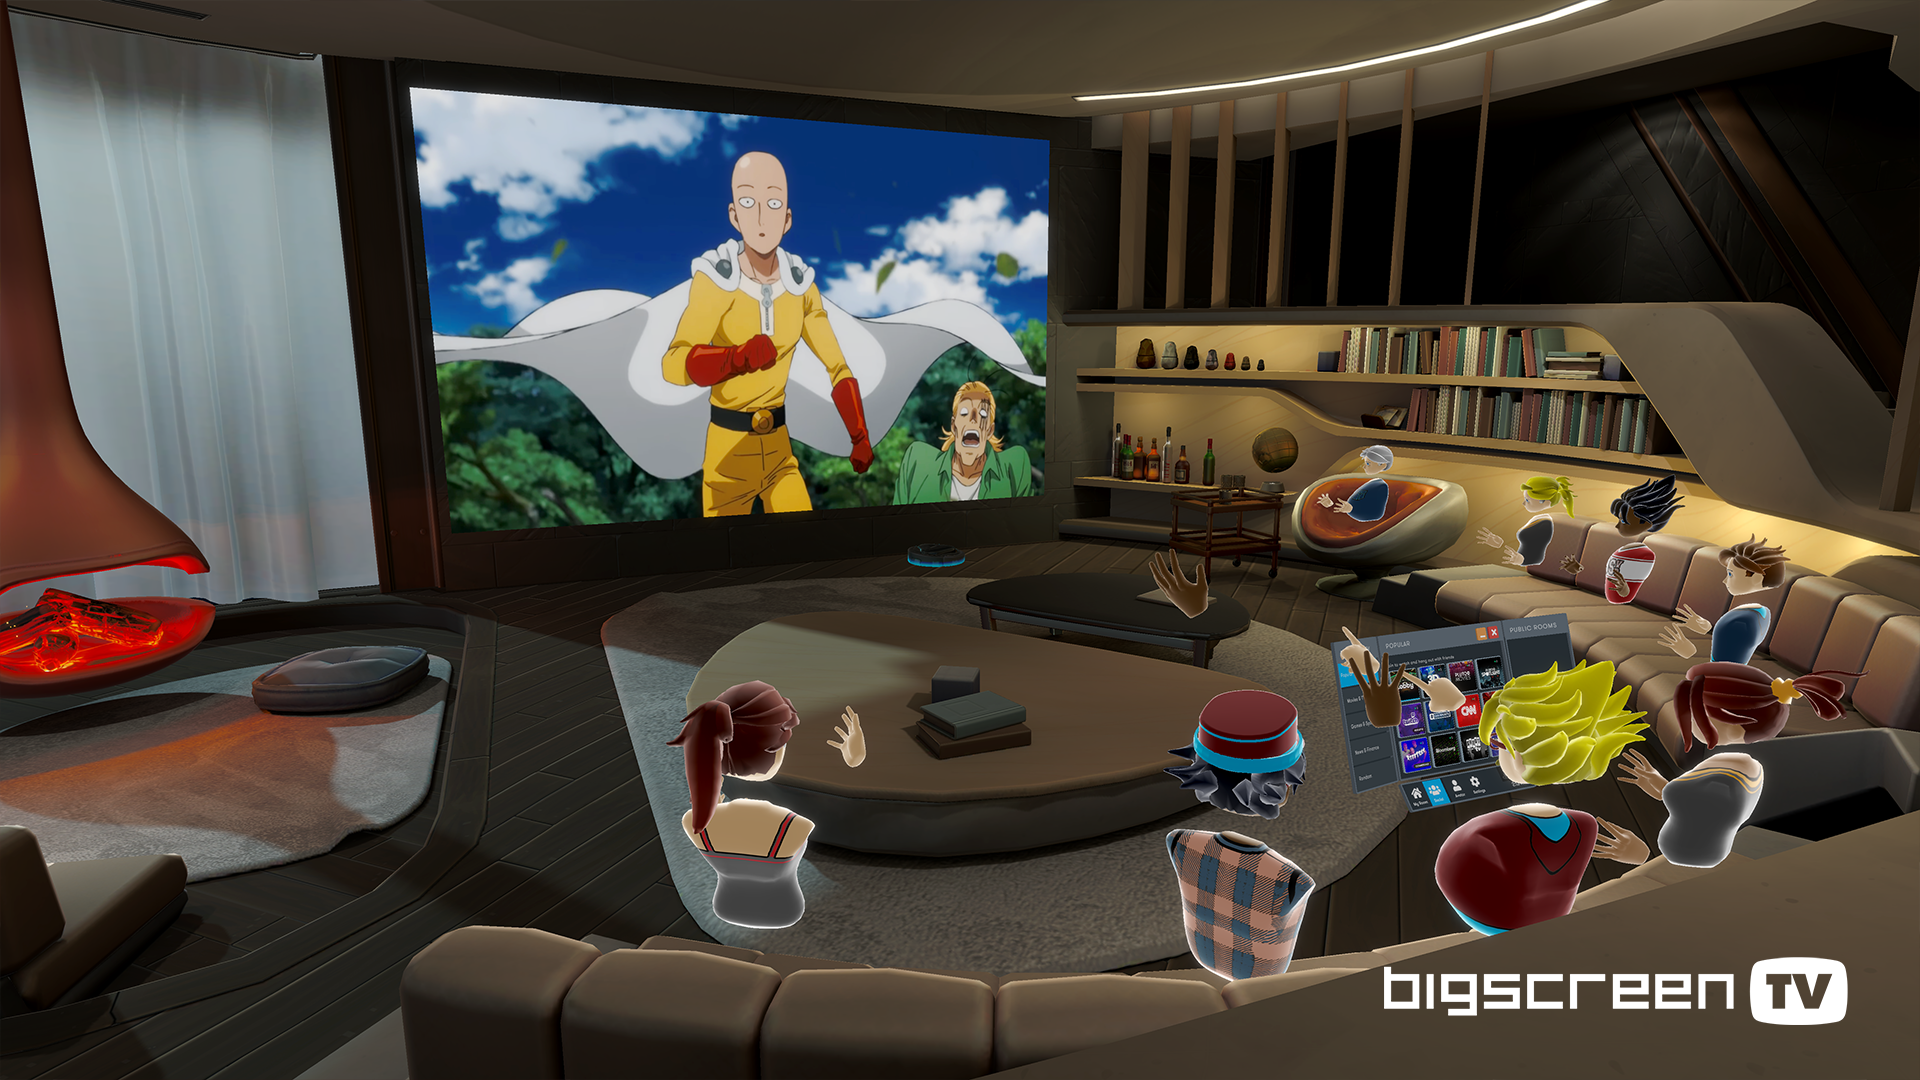 vr - Experience The Cinema and More in Virtual Reality - Anywhere, Anytime